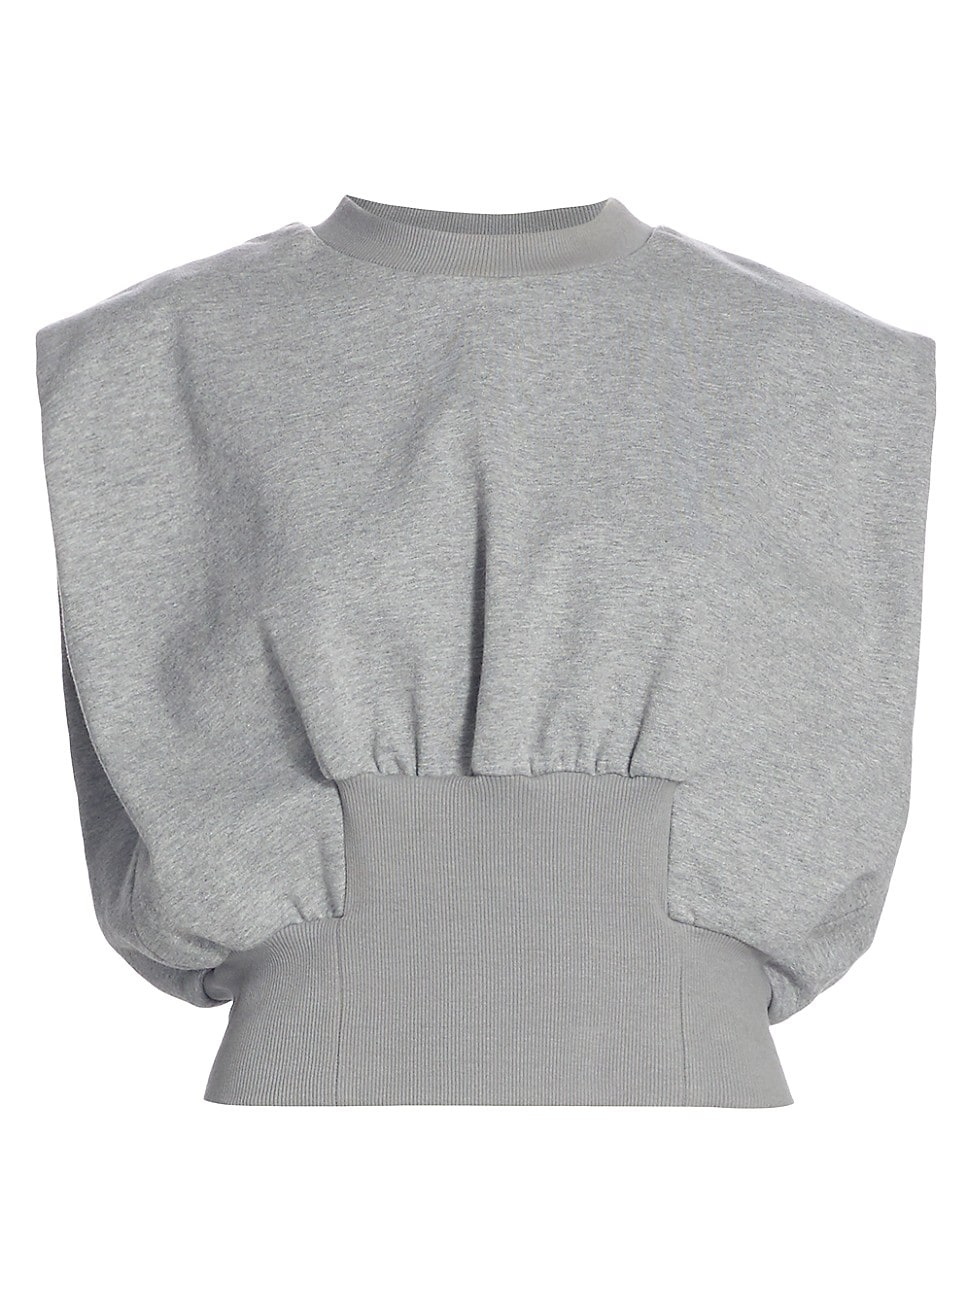 3.1 Phillip Lim WOMEN'S FRENCH TERRY SHIRRED TOP